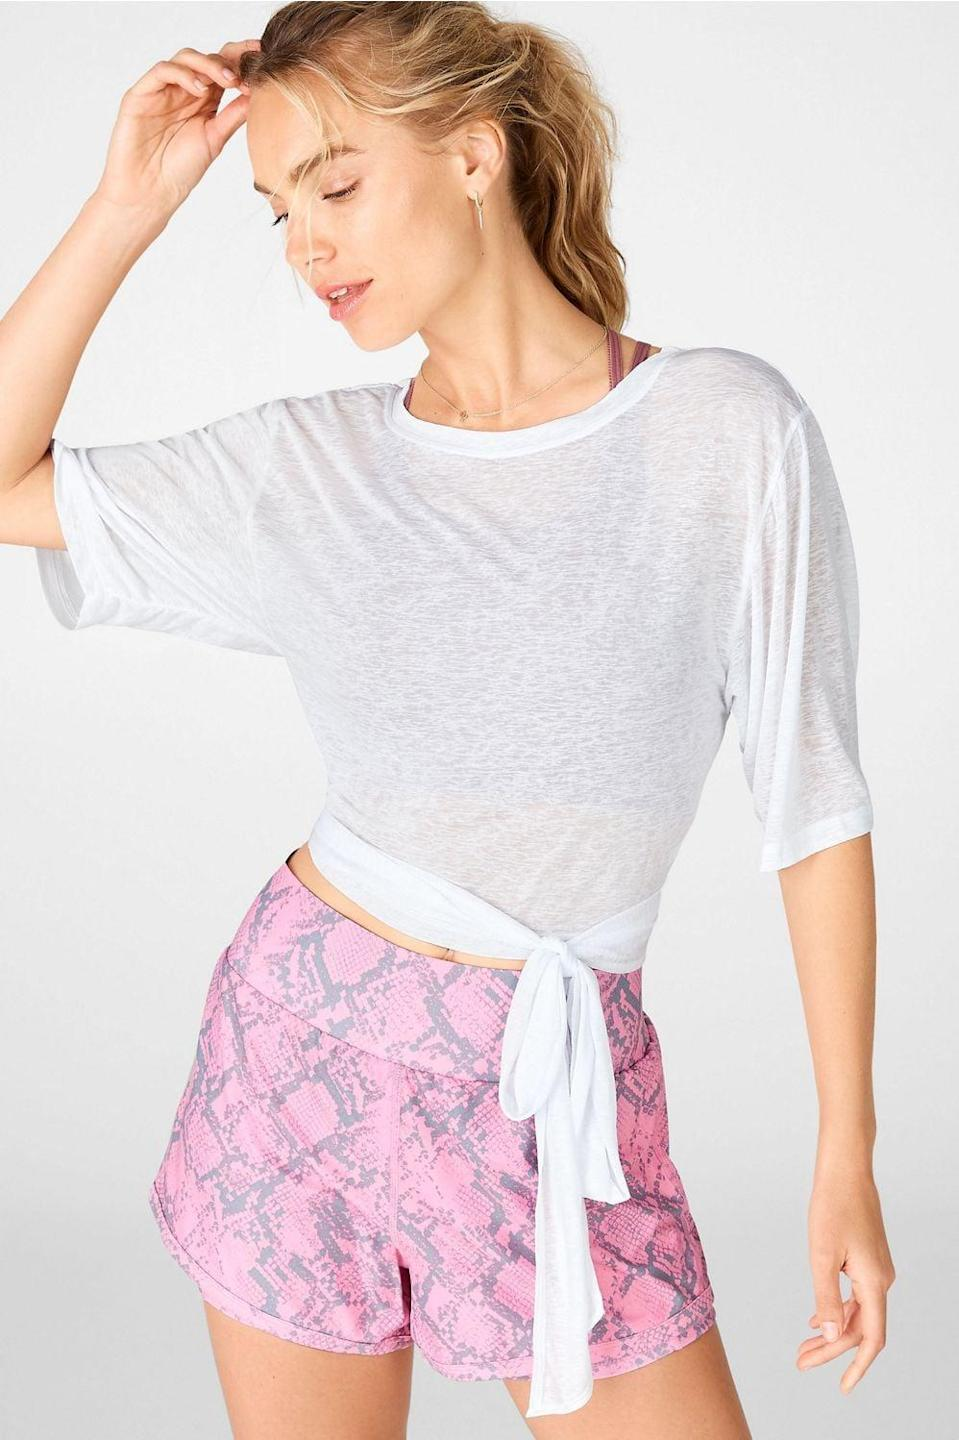 "<p>This <a href=""https://www.popsugar.com/buy/Fabletics-Ryan-SS-Tie-Up-Tee-586512?p_name=Fabletics%20Ryan%20S%2FS%20Tie%20Up%20Tee&retailer=fabletics.com&pid=586512&price=20&evar1=fit%3Auk&evar9=46472938&evar98=https%3A%2F%2Fwww.popsugar.com%2Ffitness%2Fphoto-gallery%2F46472938%2Fimage%2F47590620%2FFabletics-Ryan-SS-Tie-Up-Tee&list1=shopping%2Cworkout%20clothes%2Cfitness%20gear%2Cproducts%20under%20%2450%2C50%20under%20%2450%2Cfitness%20shopping%2Caffordable%20shopping&prop13=api&pdata=1"" class=""link rapid-noclick-resp"" rel=""nofollow noopener"" target=""_blank"" data-ylk=""slk:Fabletics Ryan S/S Tie Up Tee"">Fabletics Ryan S/S Tie Up Tee</a> ($20, originally $50) is such a cute take on a basic white tee.</p>"